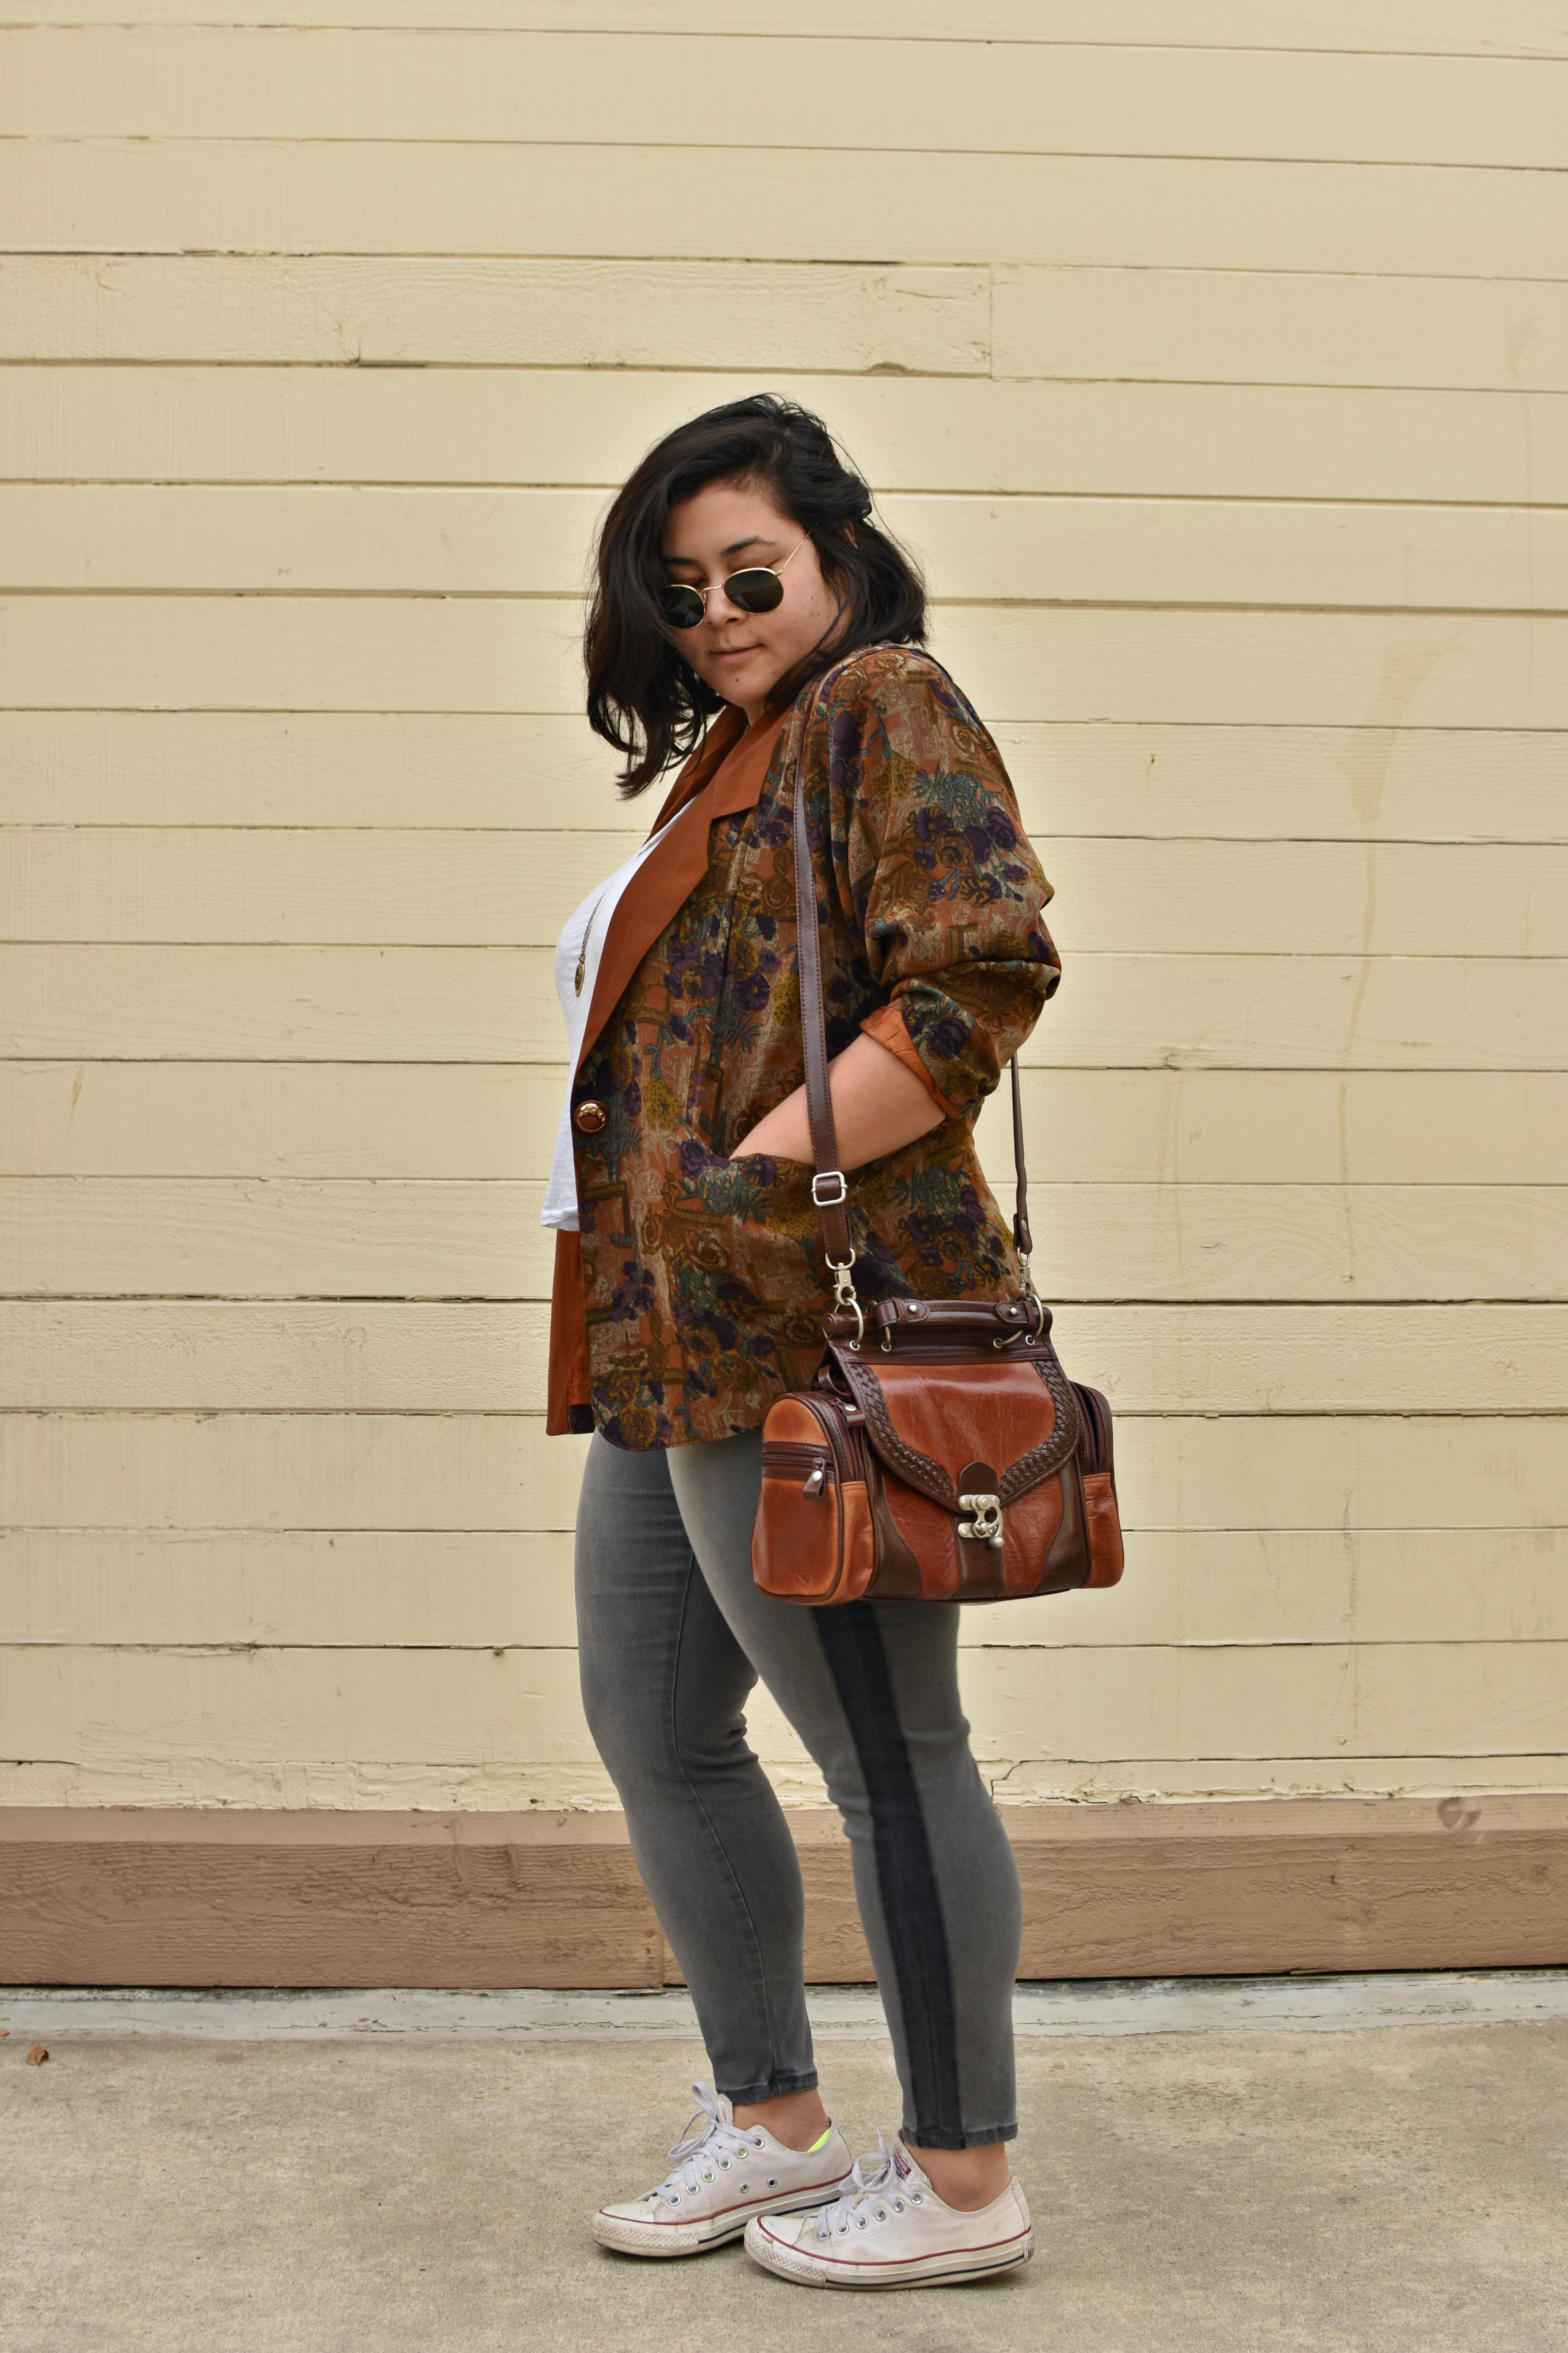 Thrifted Vintage Hipster Ootd Biancakarina